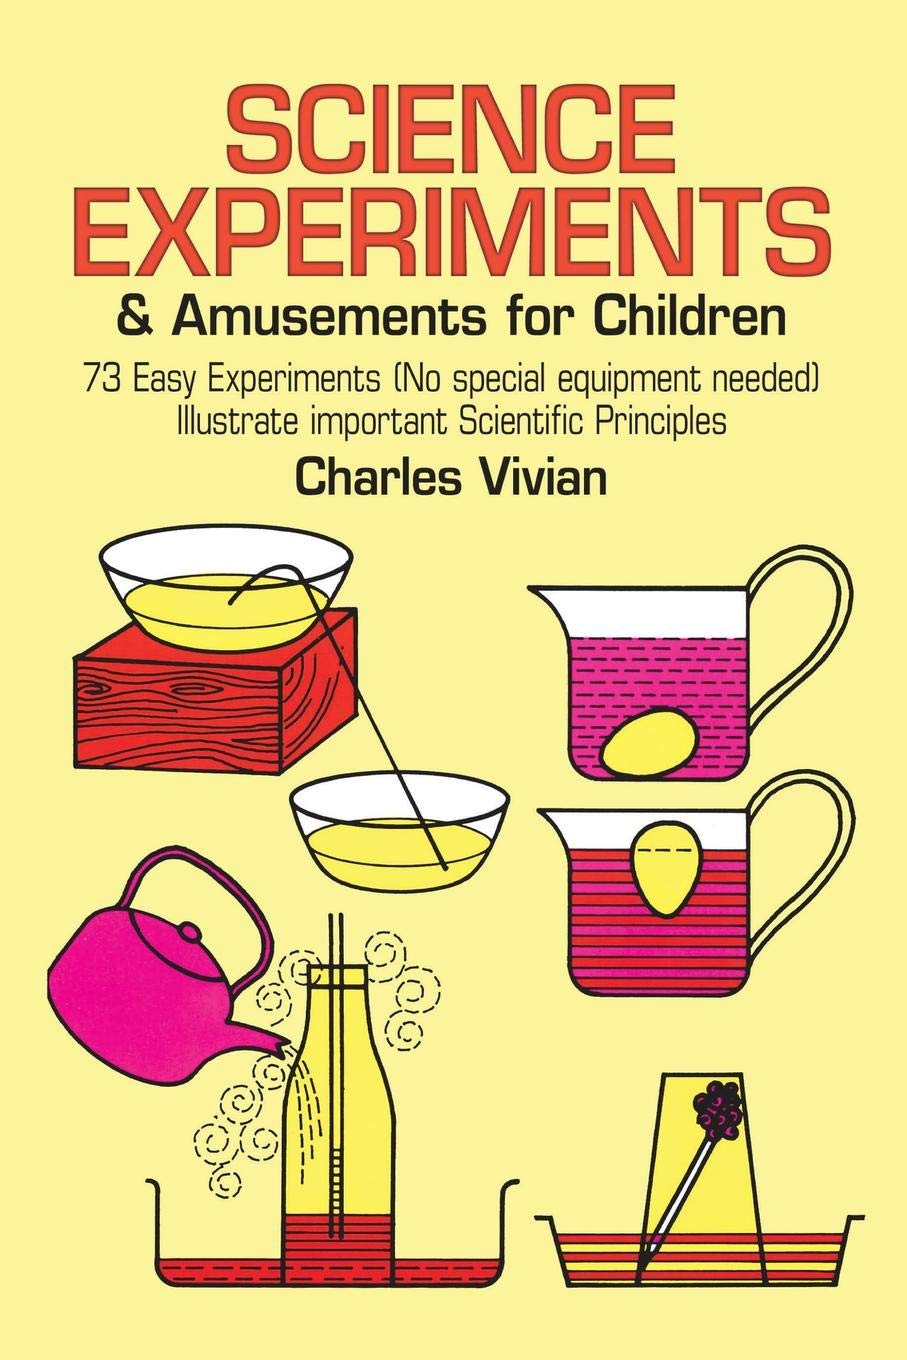 Science Experiments and Amusements for Children: 73 Easy Experiments (No Special Equipment Needed) Illustrate Important Scientific Principles (Dover Children's Science Books)